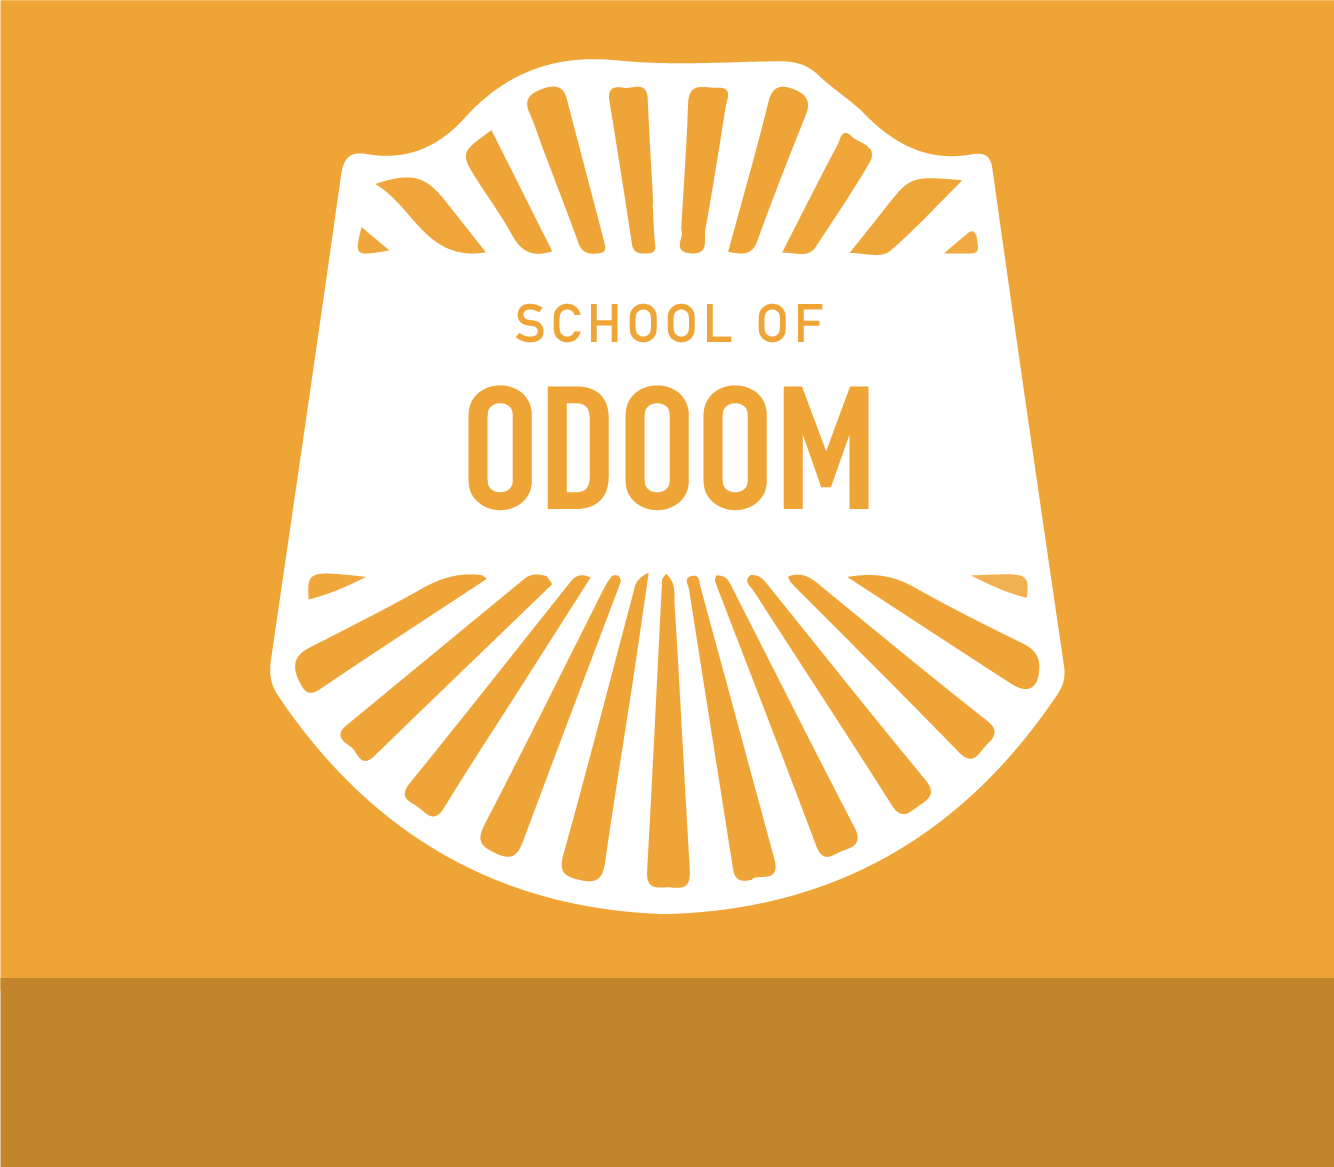 School of odoom